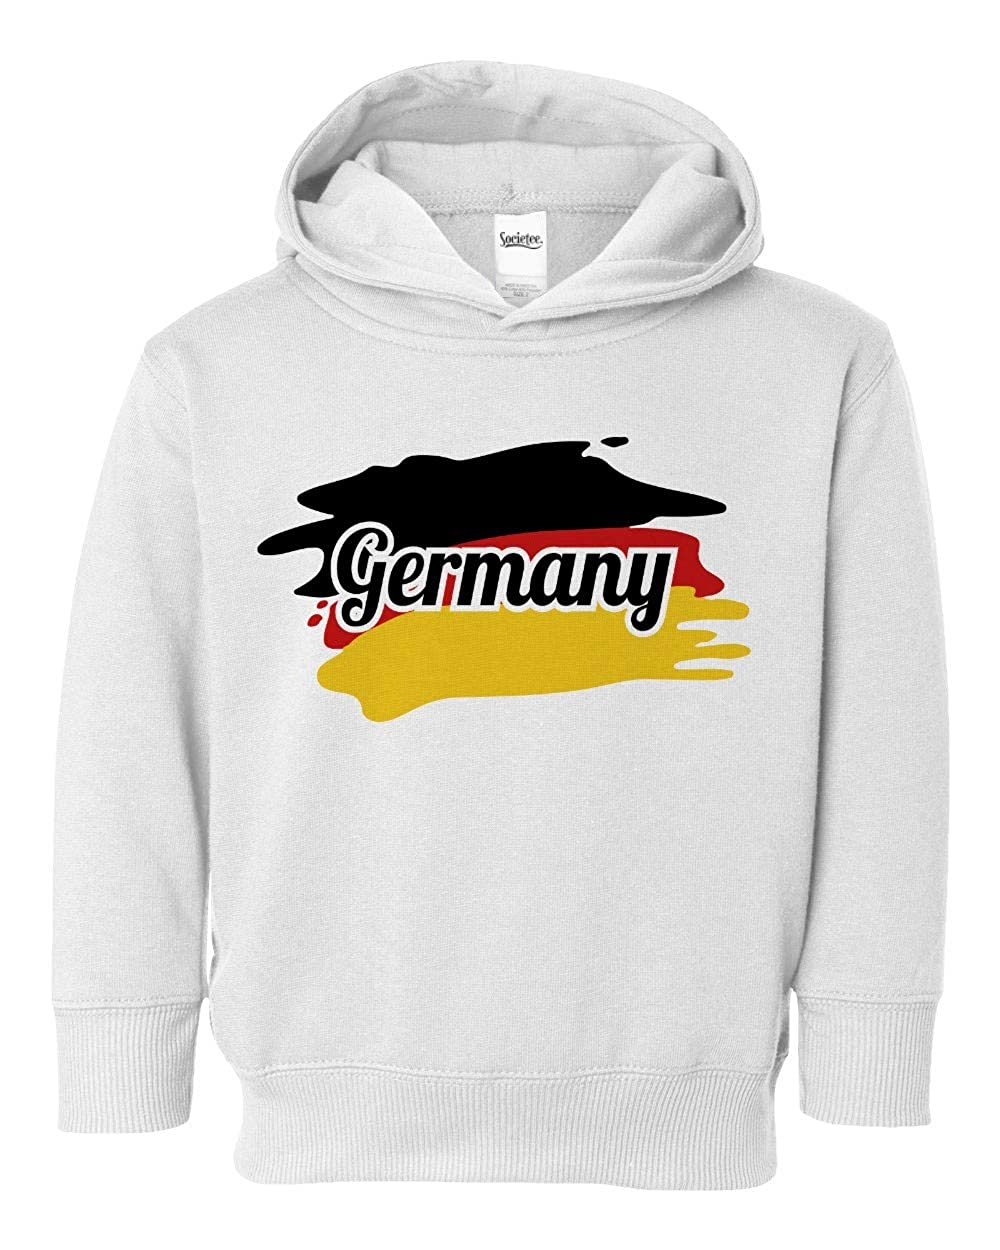 Societee Germany National Pride Cute Adorable Girls Boys Toddler Hooded Sweatshirt